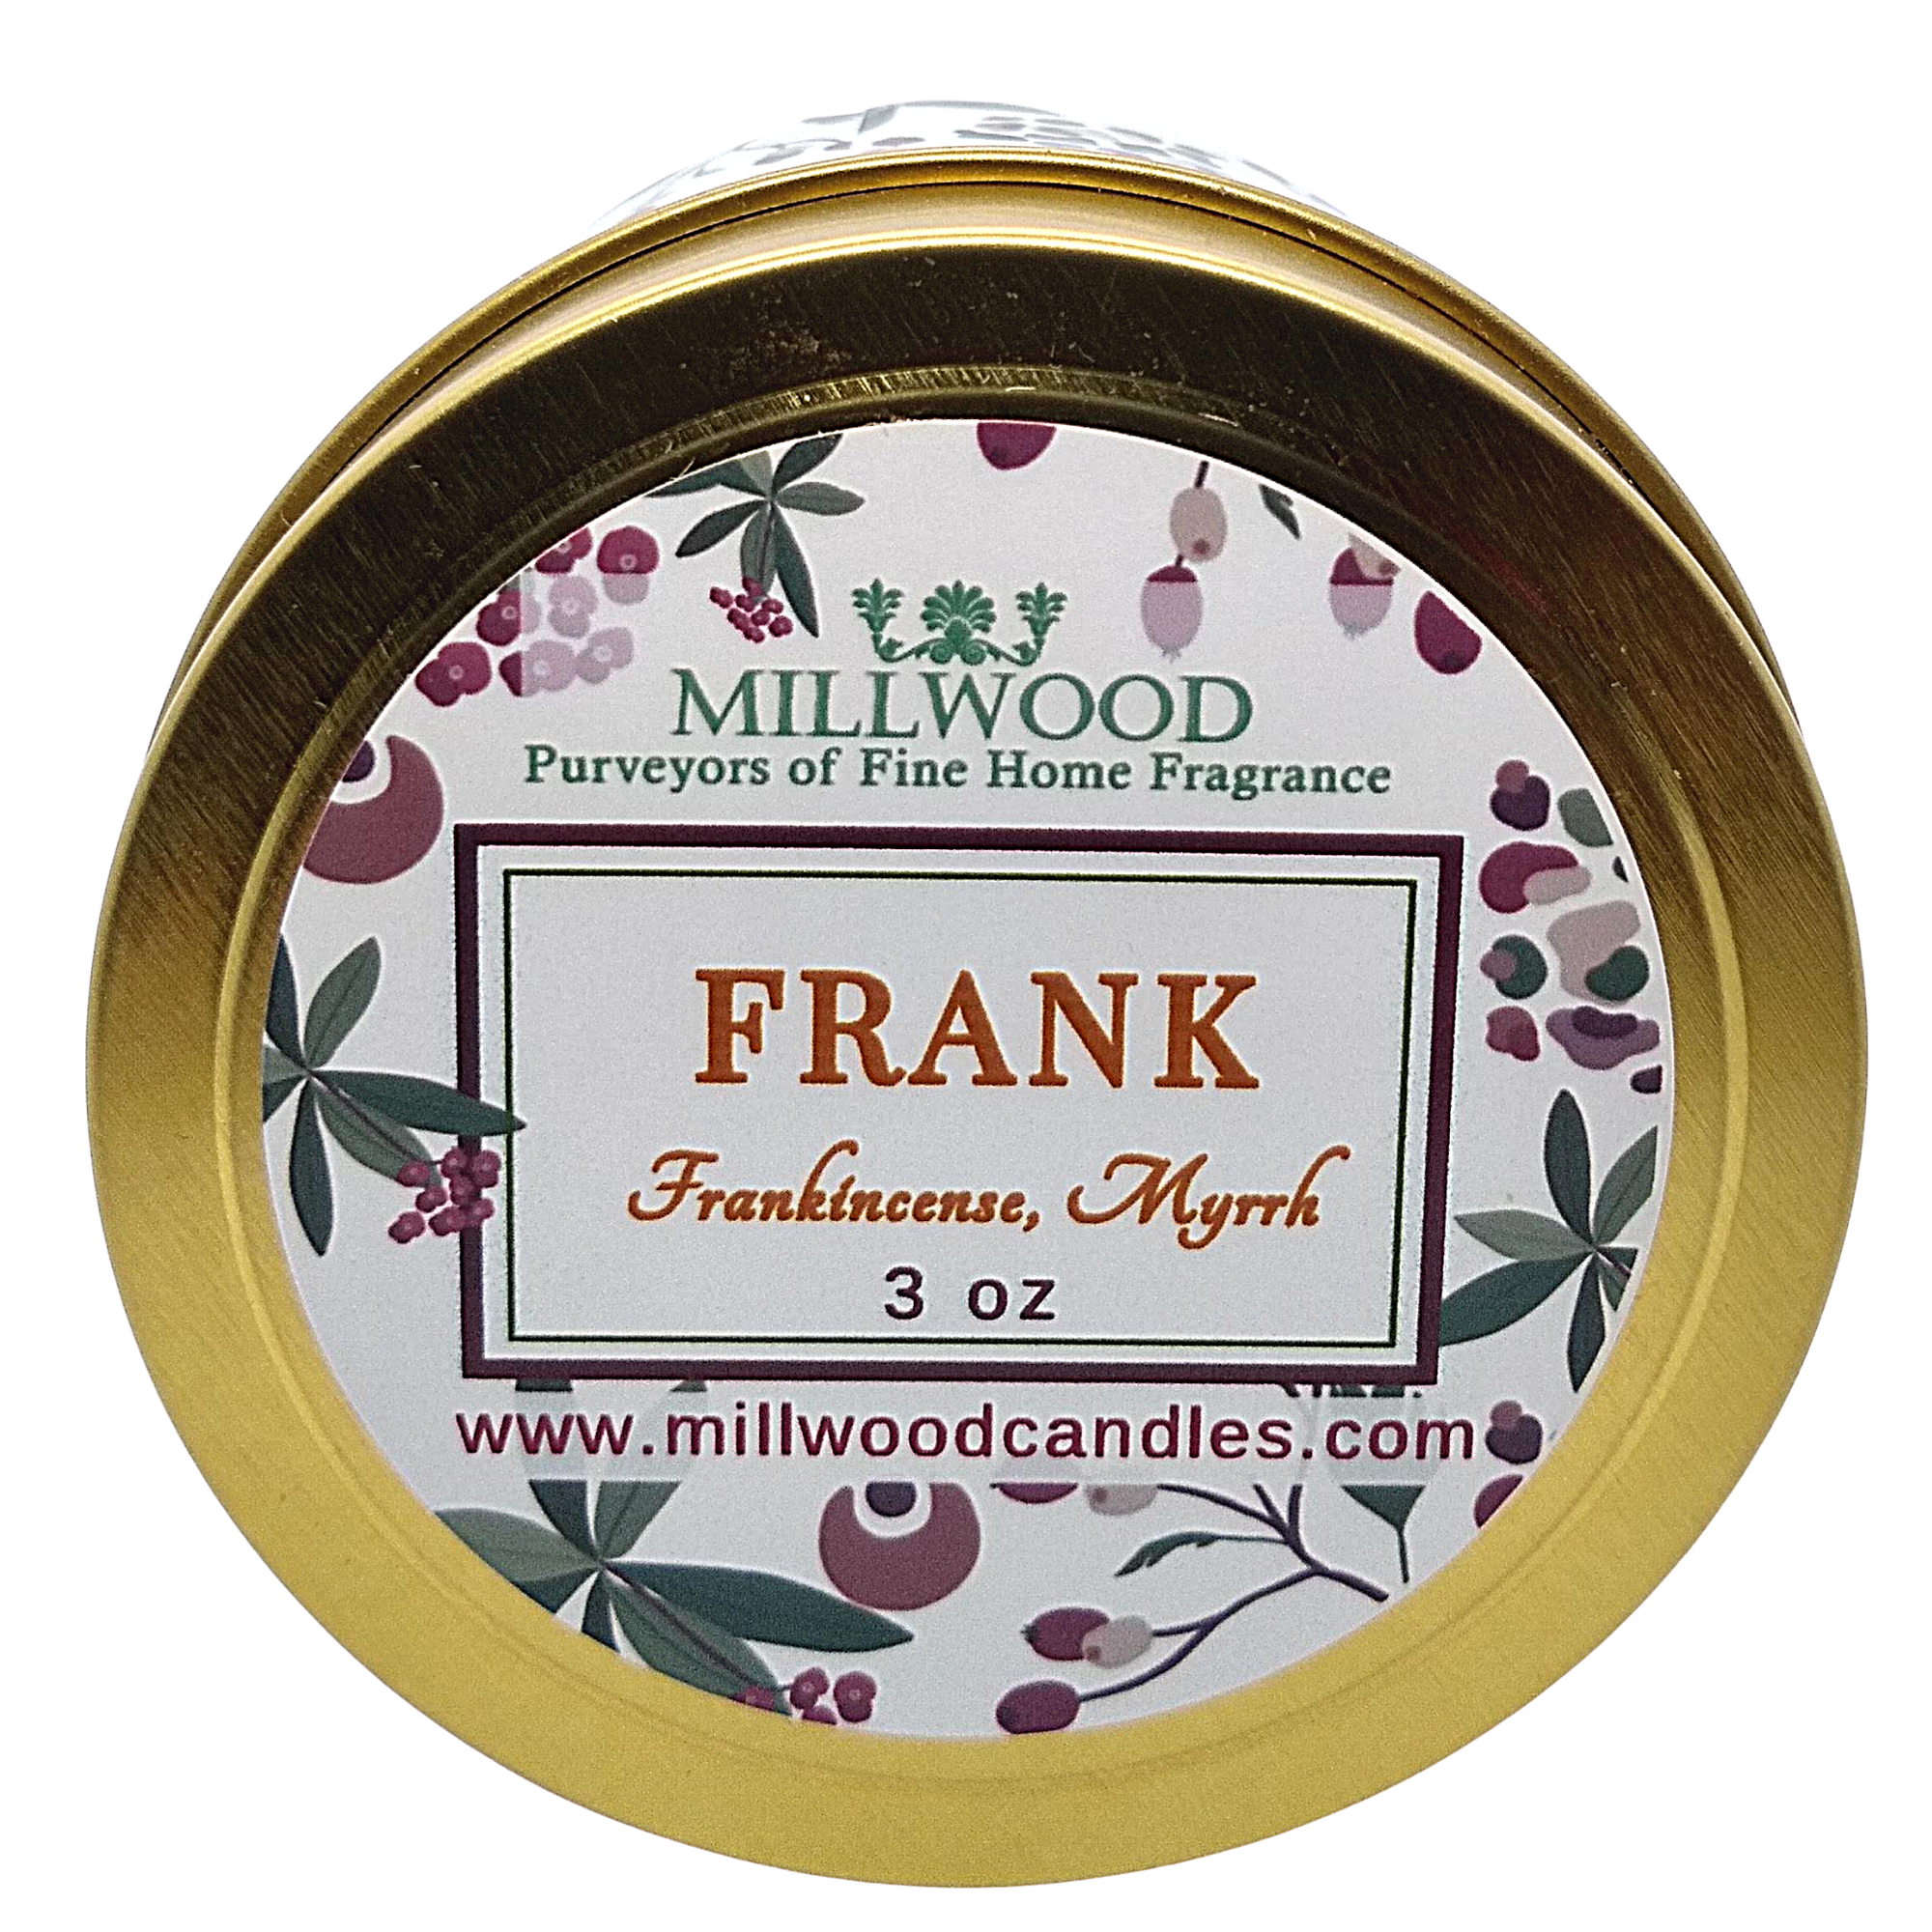 Frankincense Soy Candle by Millwood Candles